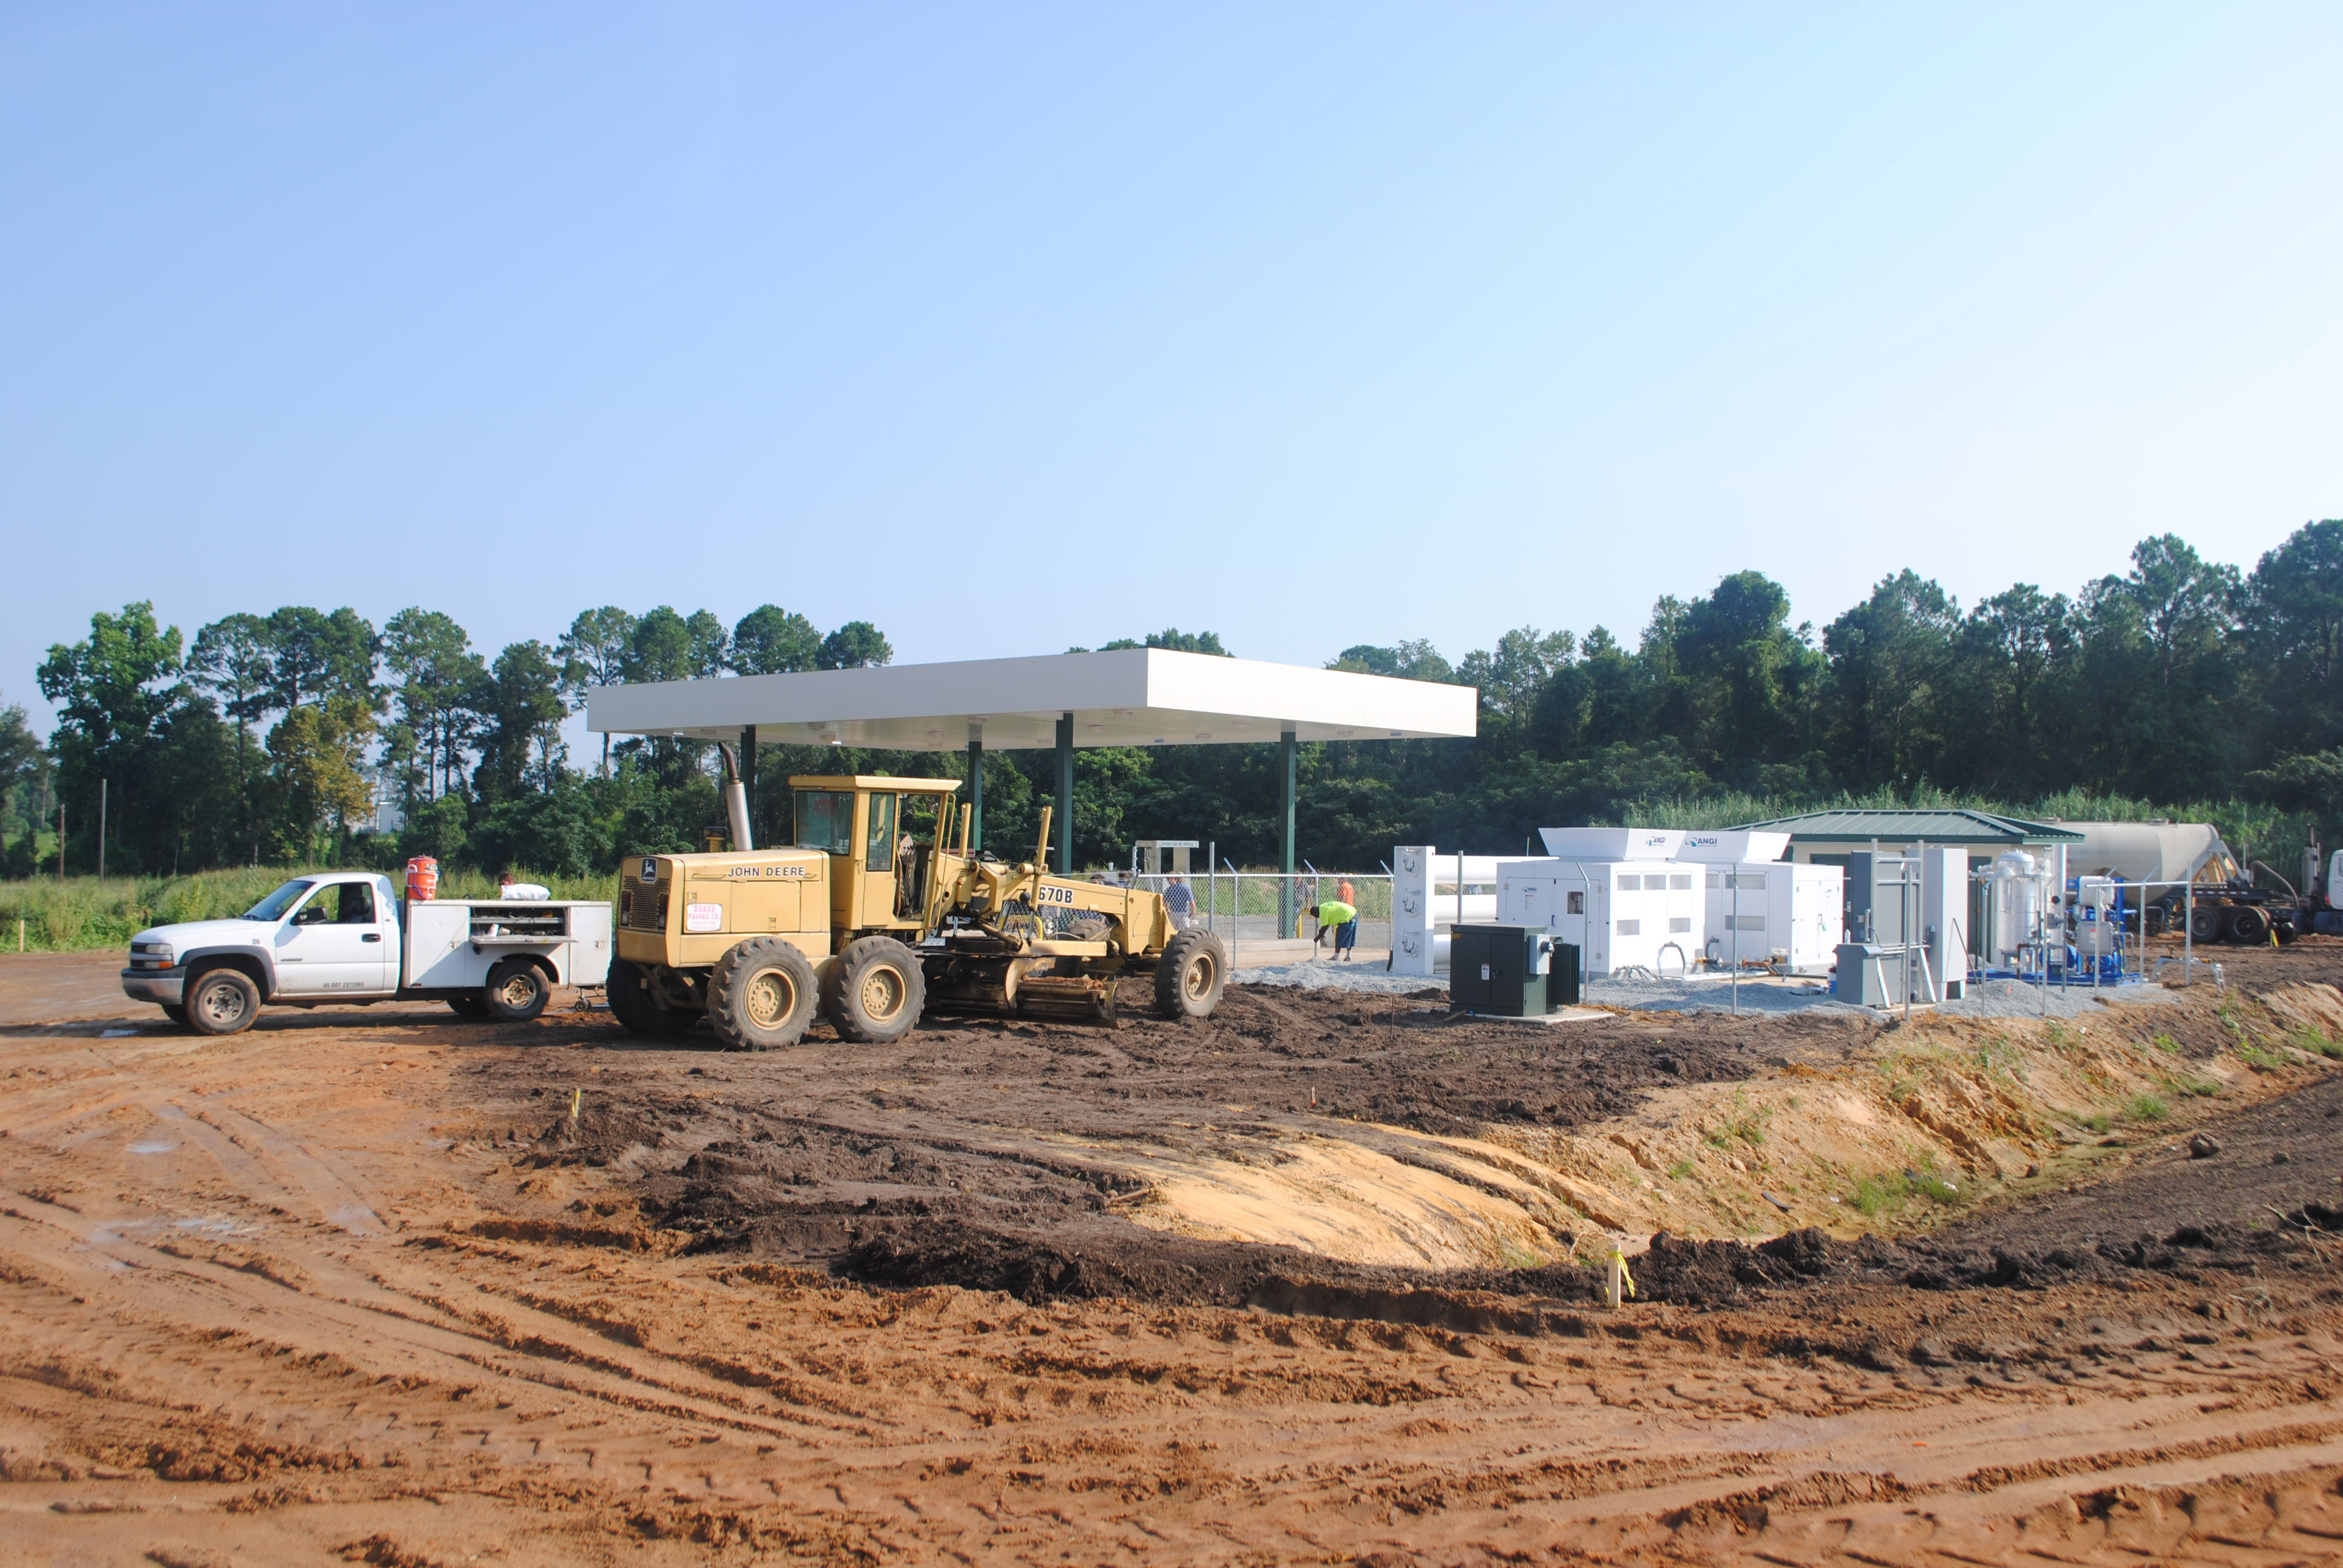 CNG Progress in August - Canopy is ready, fencing is going up